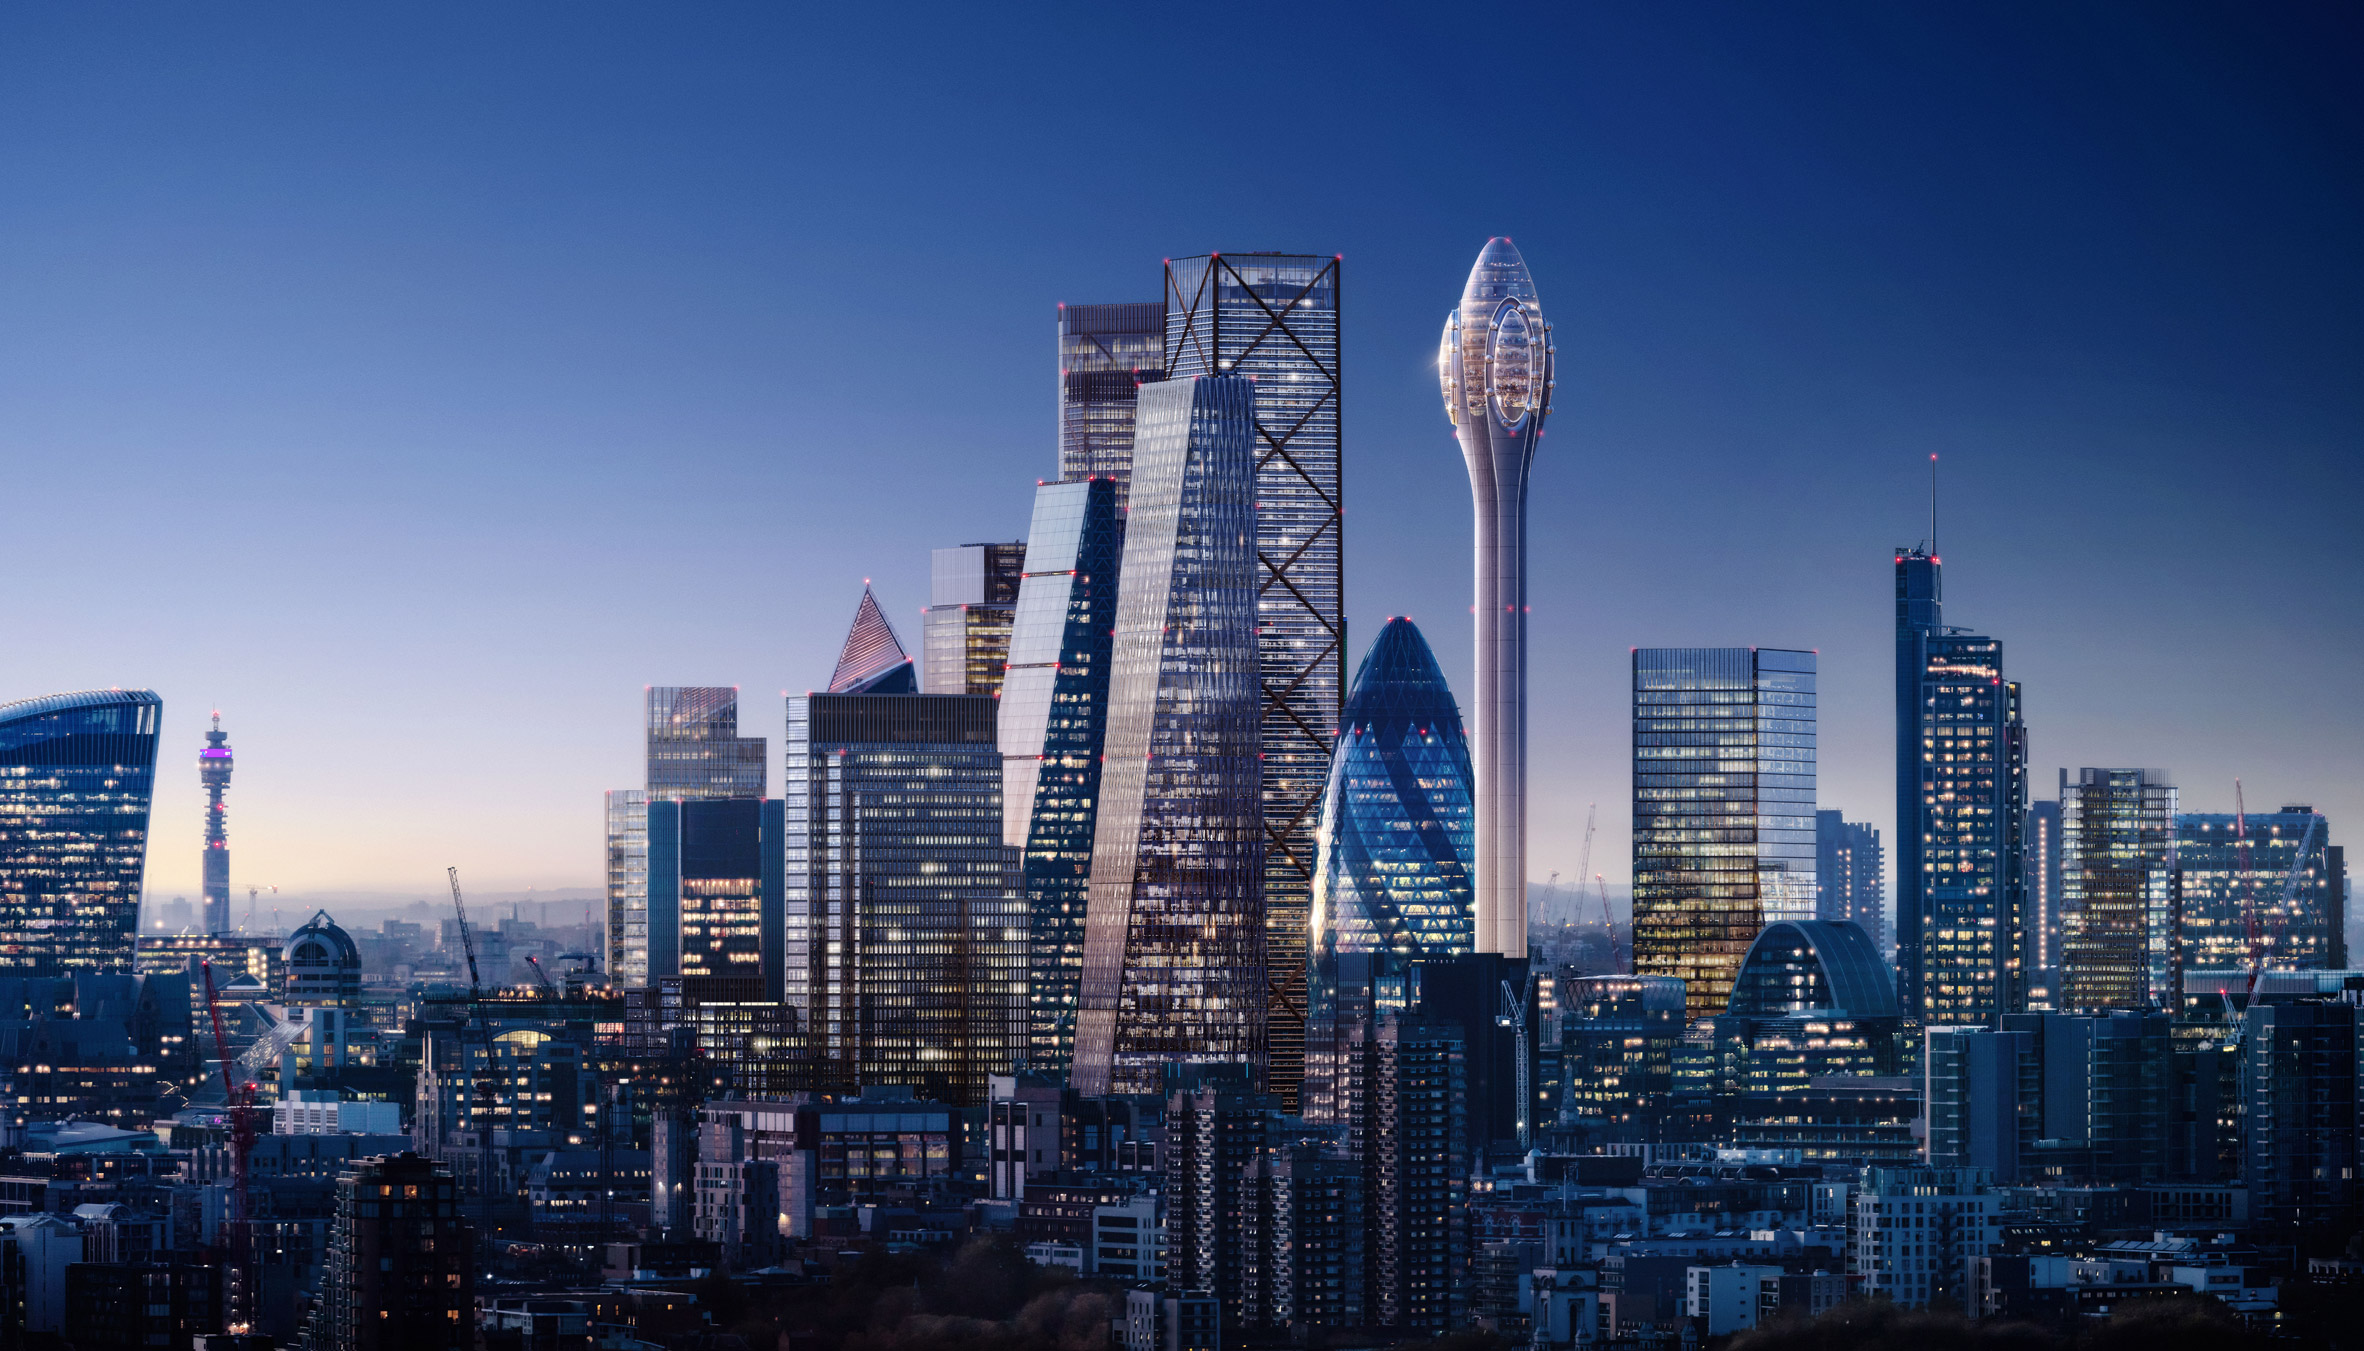 The Tulip by Foster + Partners